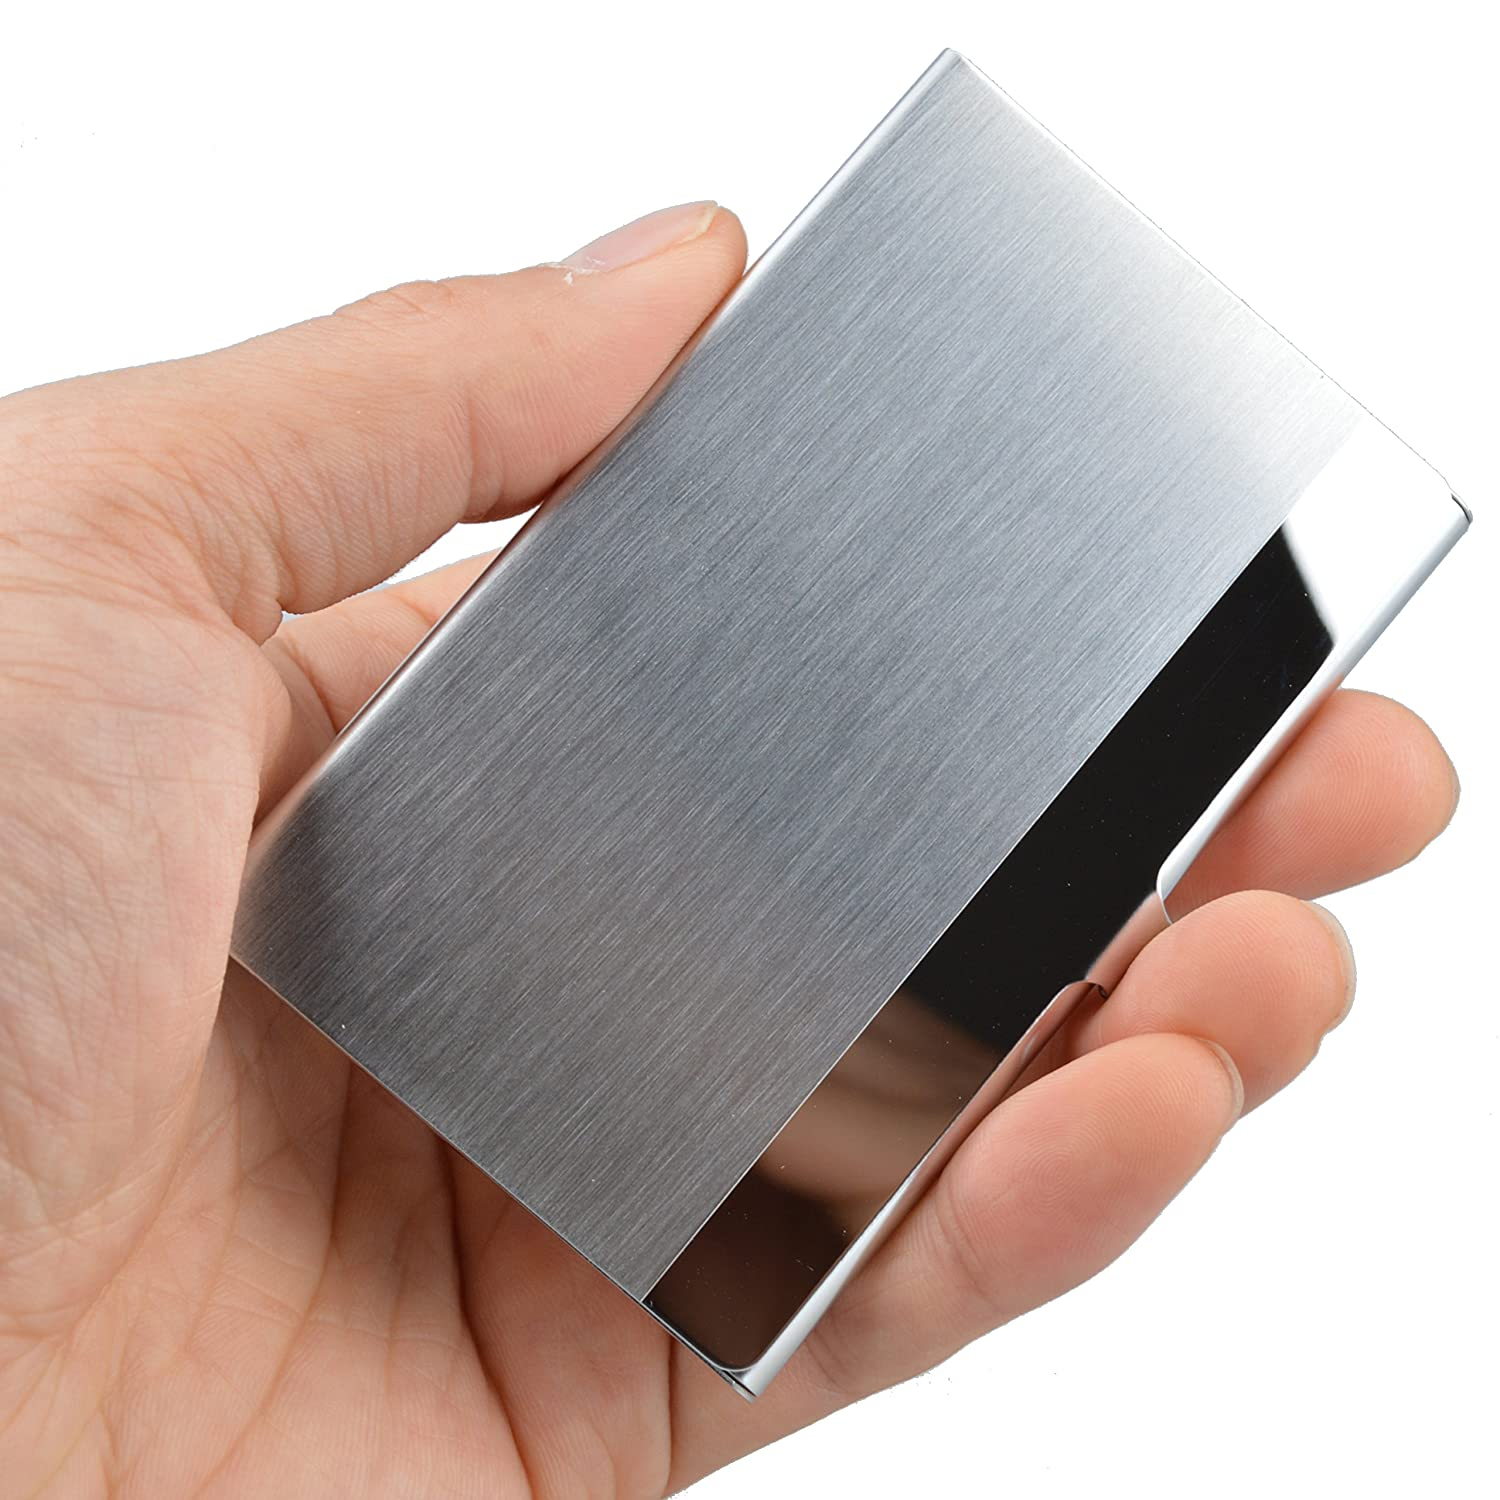 Business card holders amazon office school supplies maxgear professional business card holder business card case stainless steel card holder keep business cards in magicingreecefo Image collections